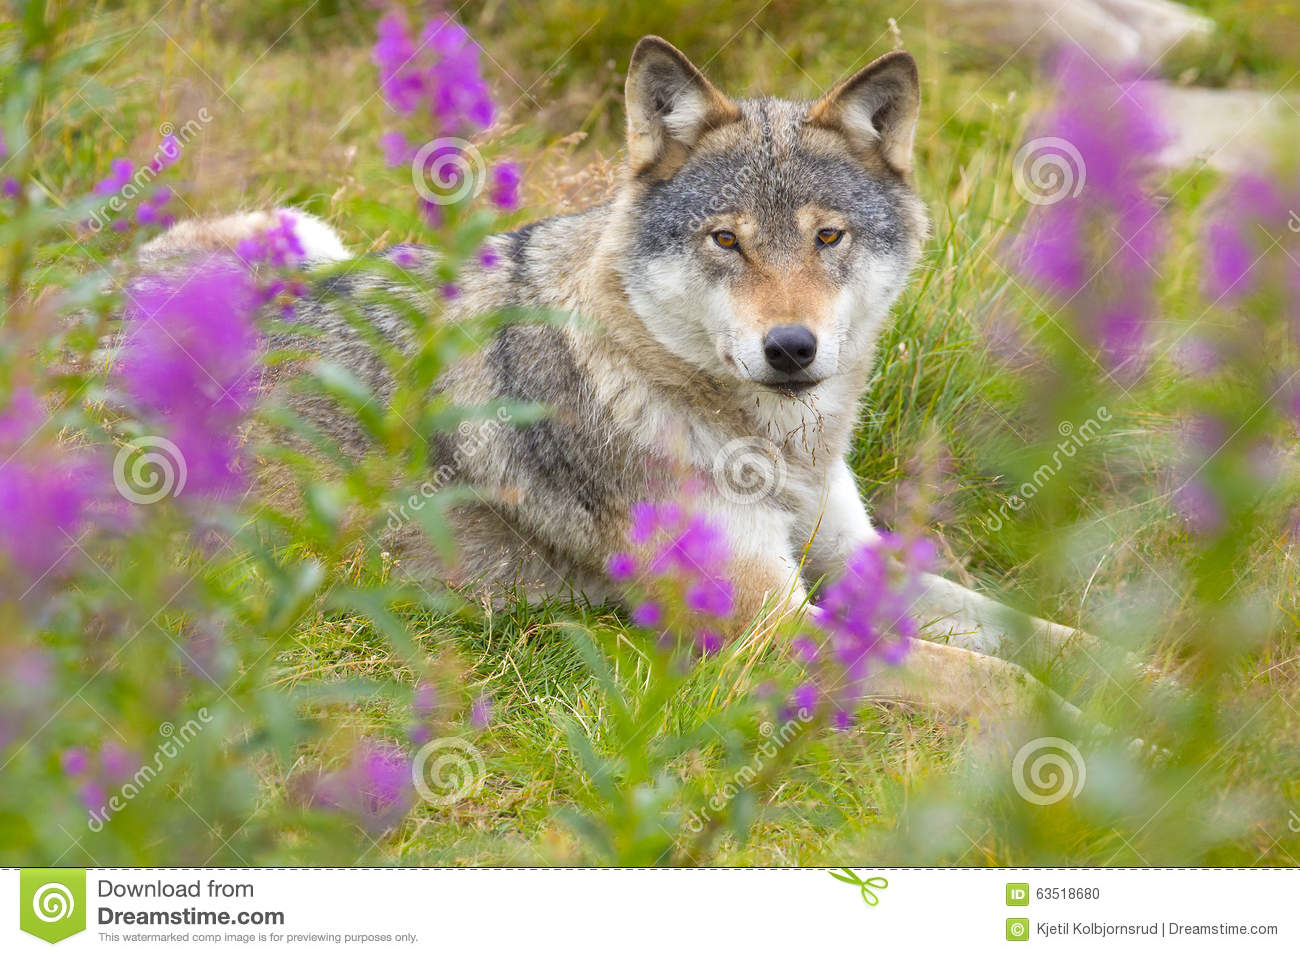 Wolf rests in a grass meadow with flowers